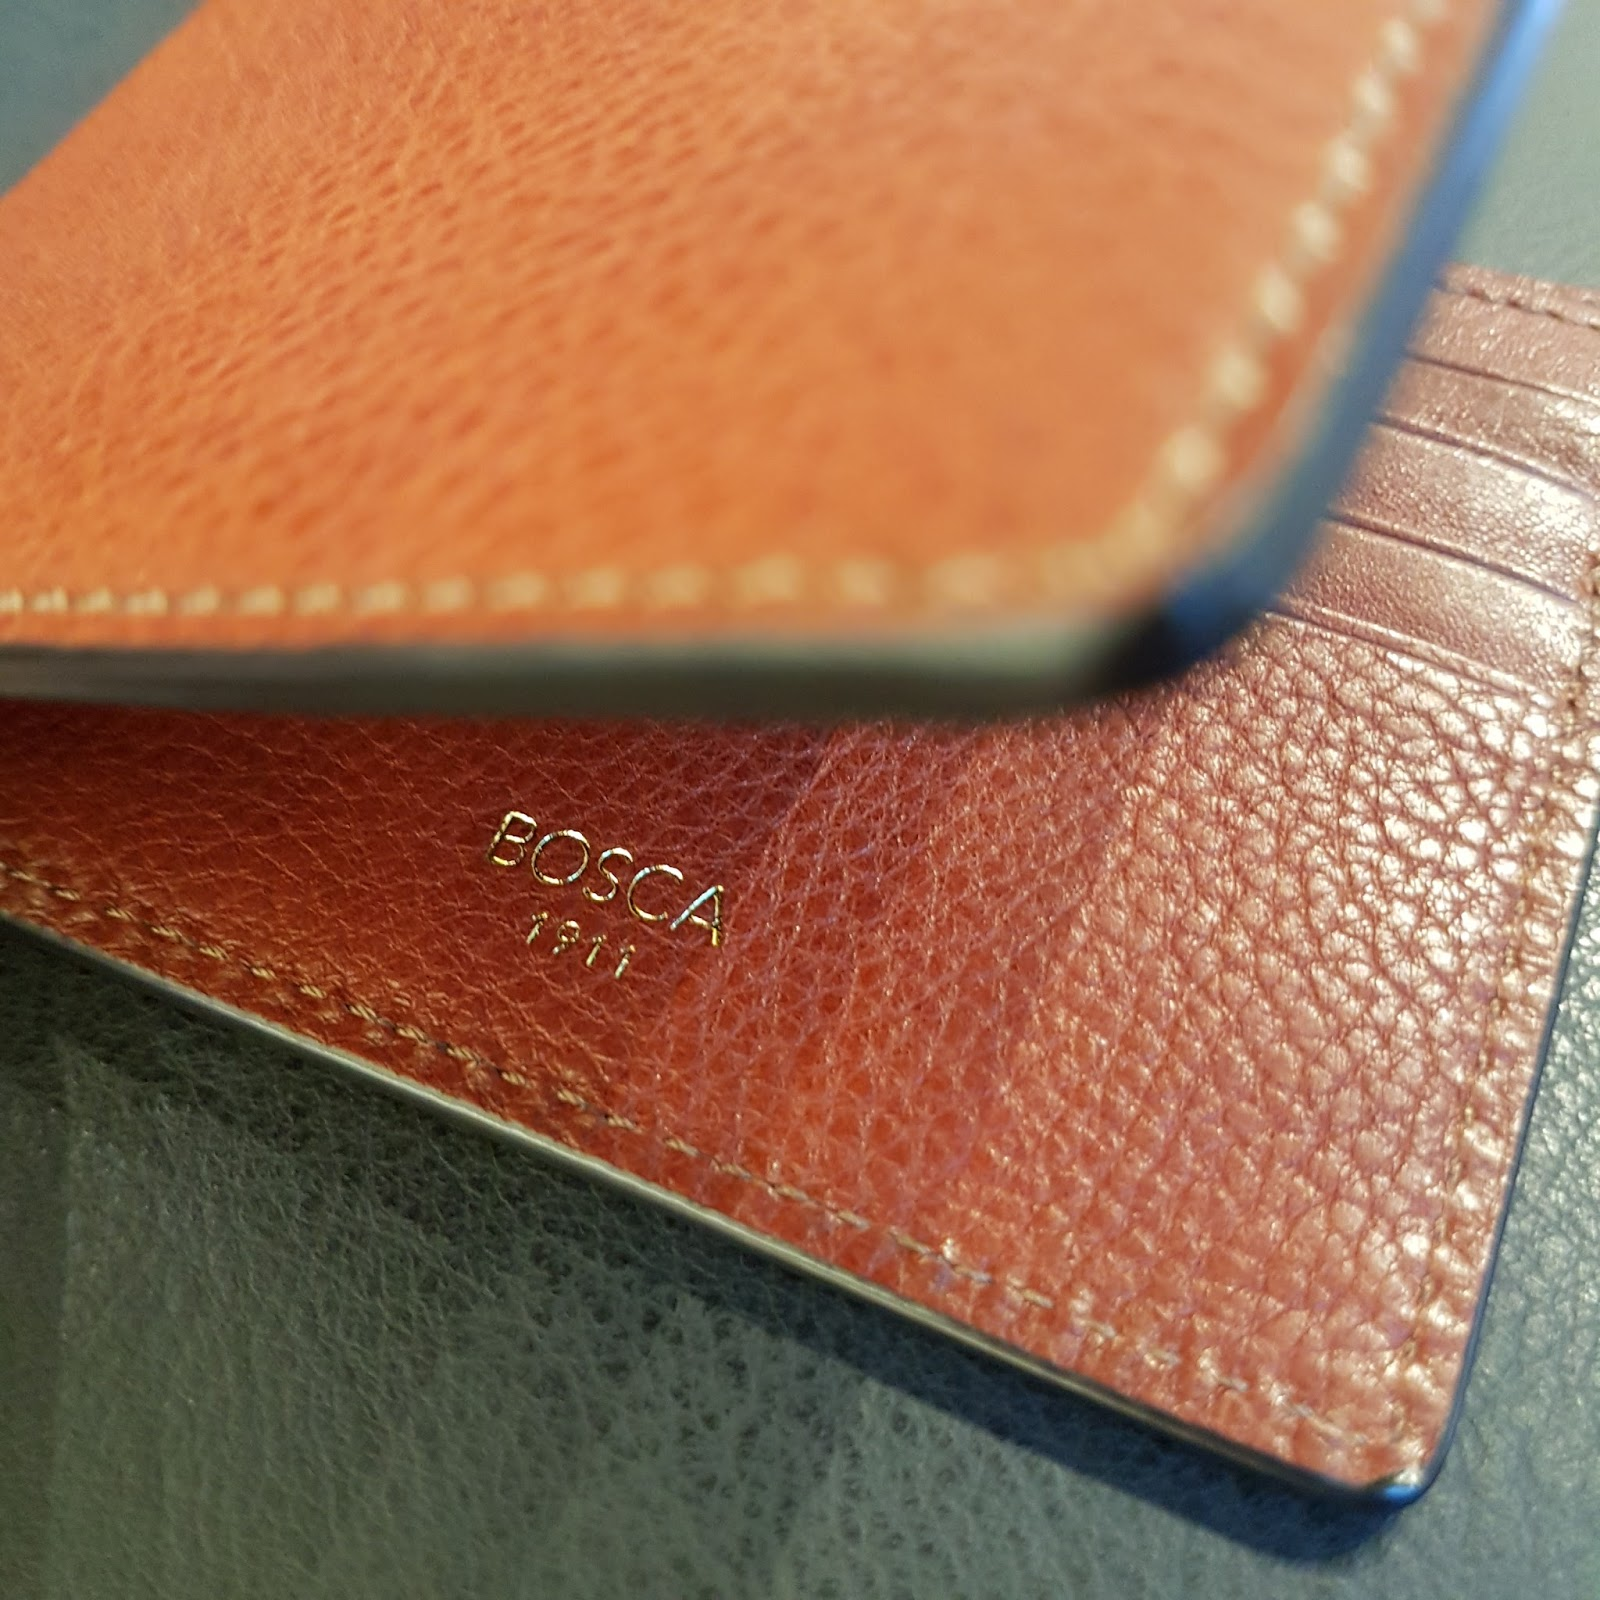 a6b1d3b9896 Bosca is a third generation Italian-American leather goods company  established in 1911. Their designs are timeless, and their craftsmanship  impeccable.